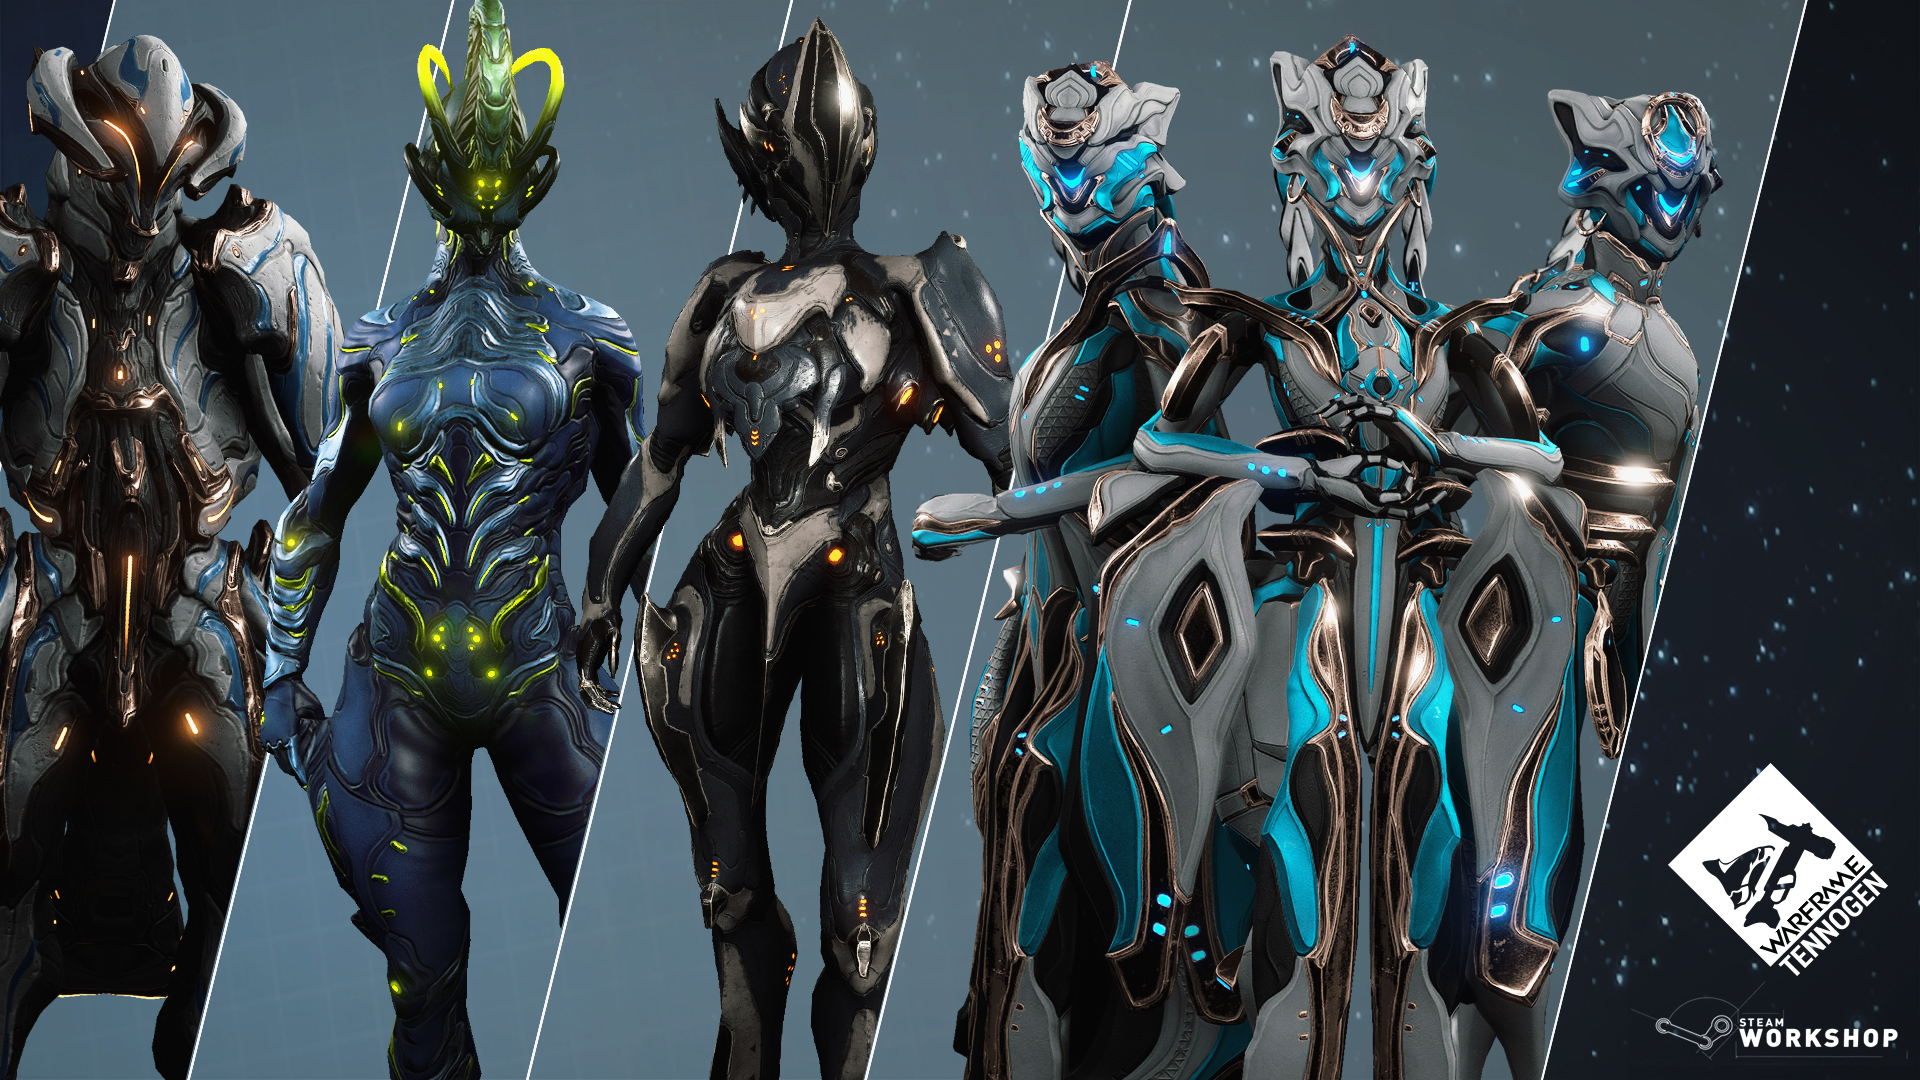 Dec 5 2018 Winter Solstice 2018 Seasonal Customizations Are Back For A Limited Time Warframe Wintermaker Put On Your Warm Coat It S Winter In Warframe For A Limited Time Our Previous Winter Solstice Customizations Are Back On All Platforms Nova mithra skin by lukinu_u. it s winter in warframe